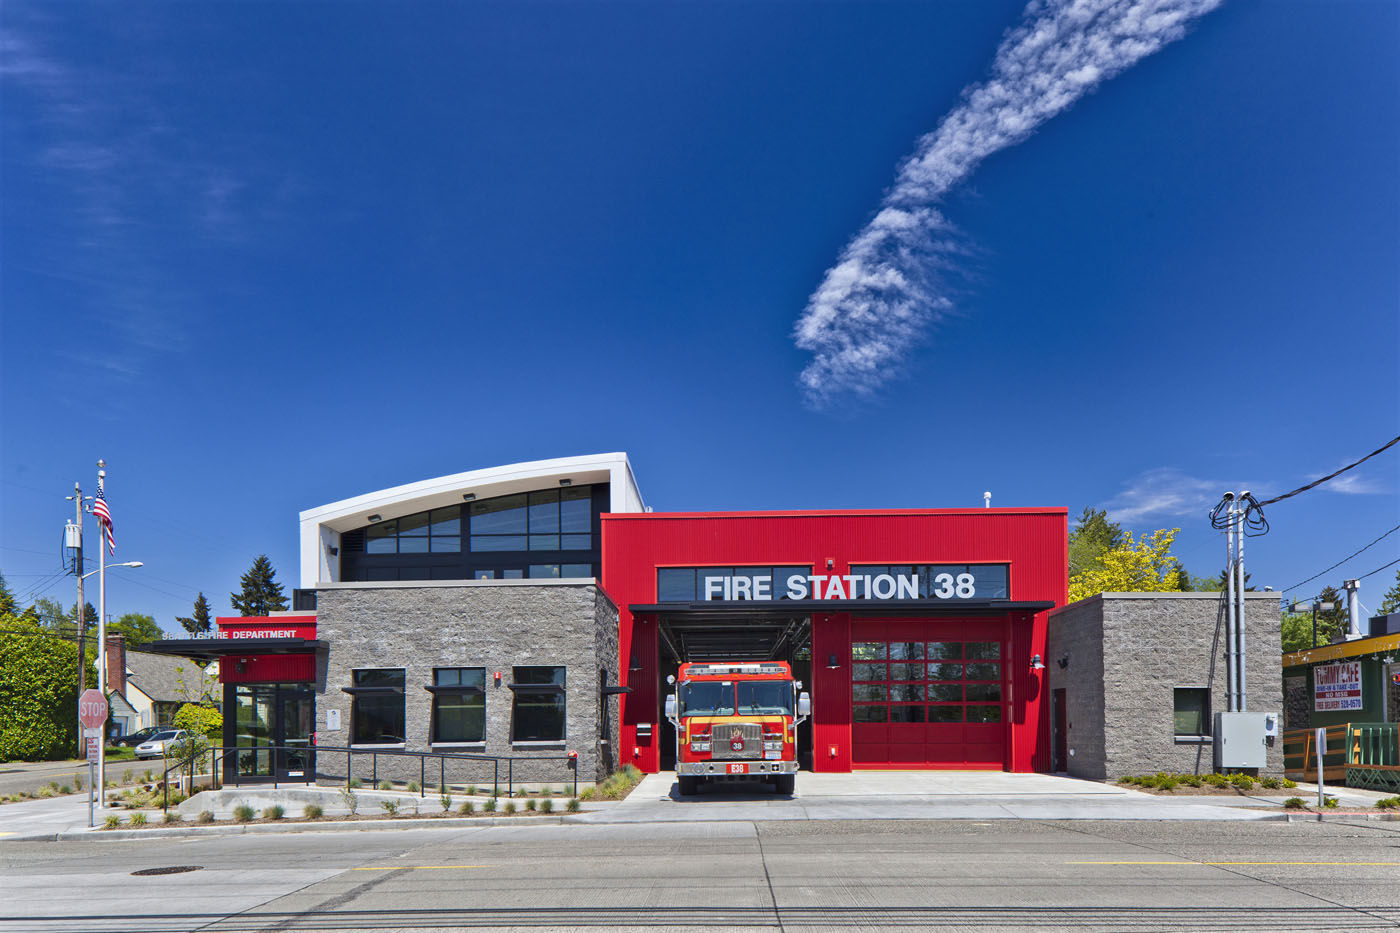 Seattle Djc Com Local Business News And Data Environment Fire Station 38 Wins Gold From Leed